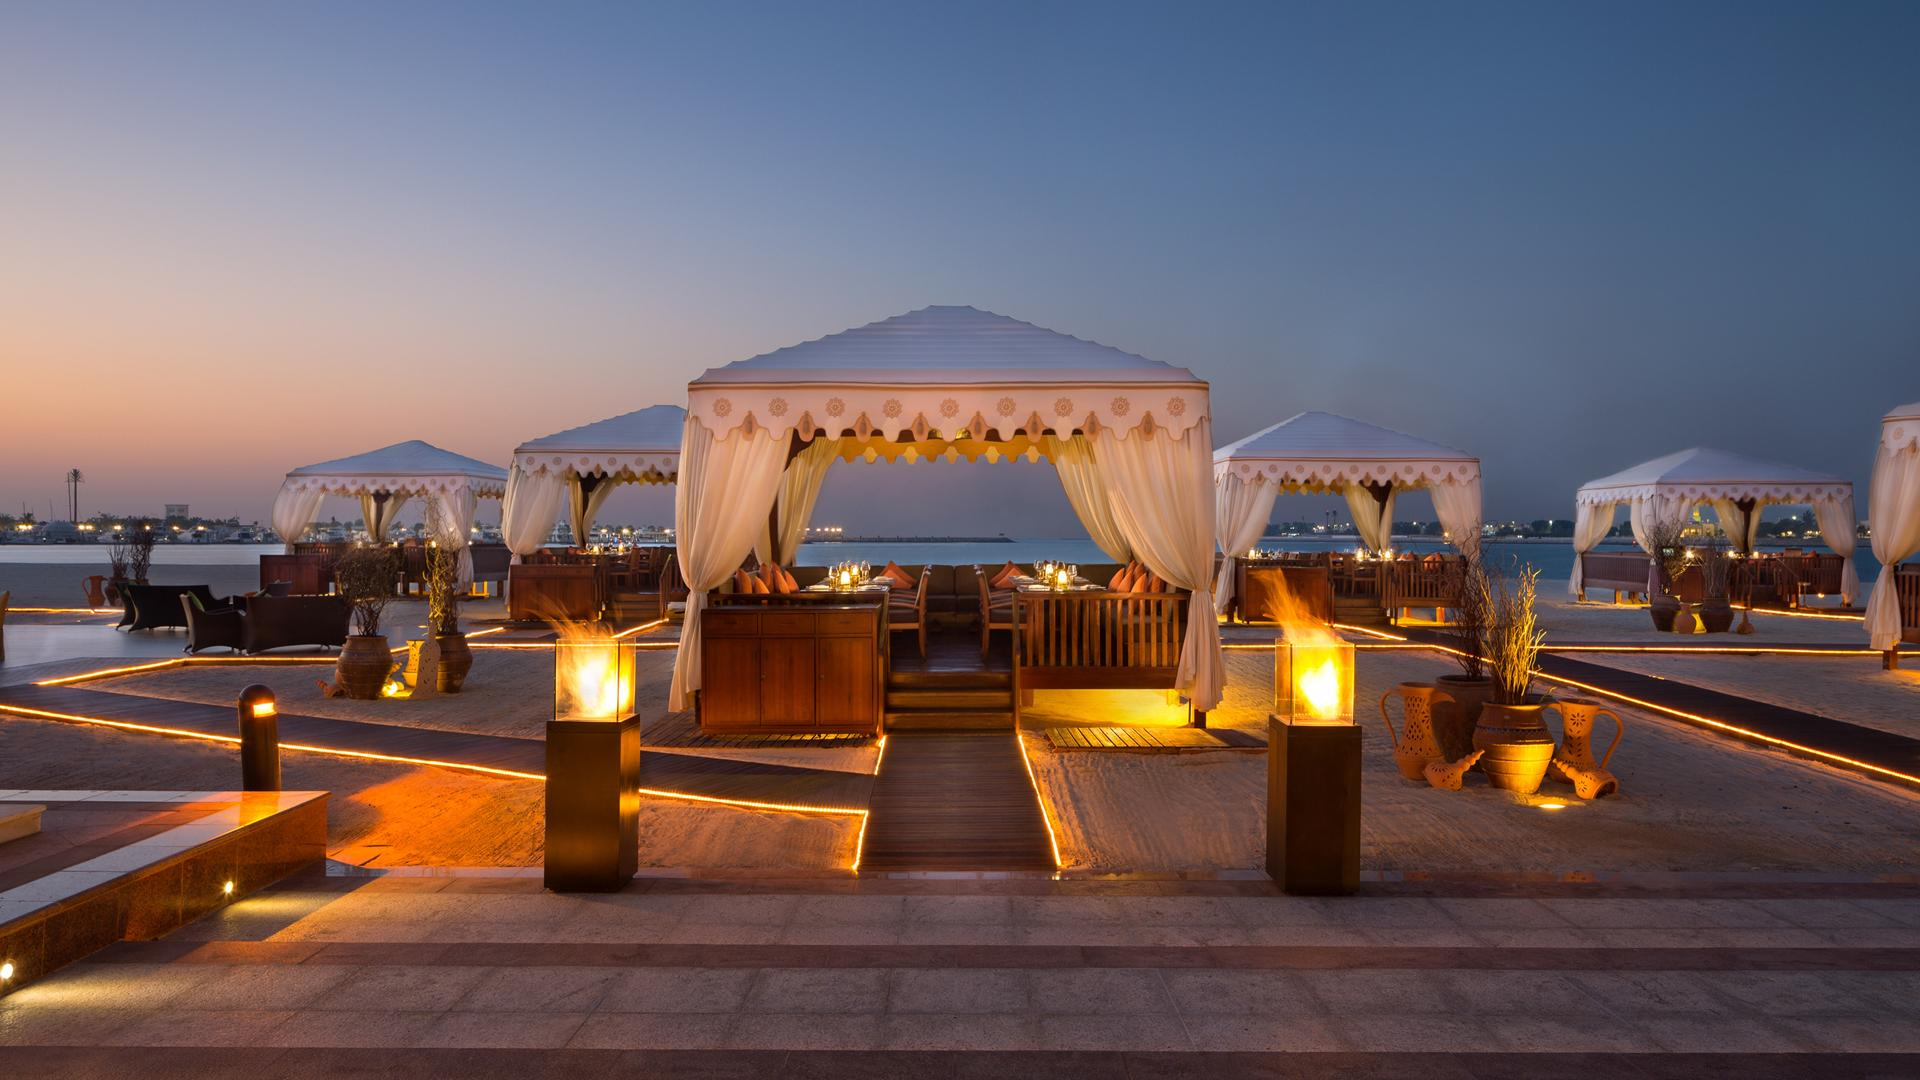 stackliving-luxurious-hotels-01-emirates-palace-abu-dhabi-05-Beach-cabanas